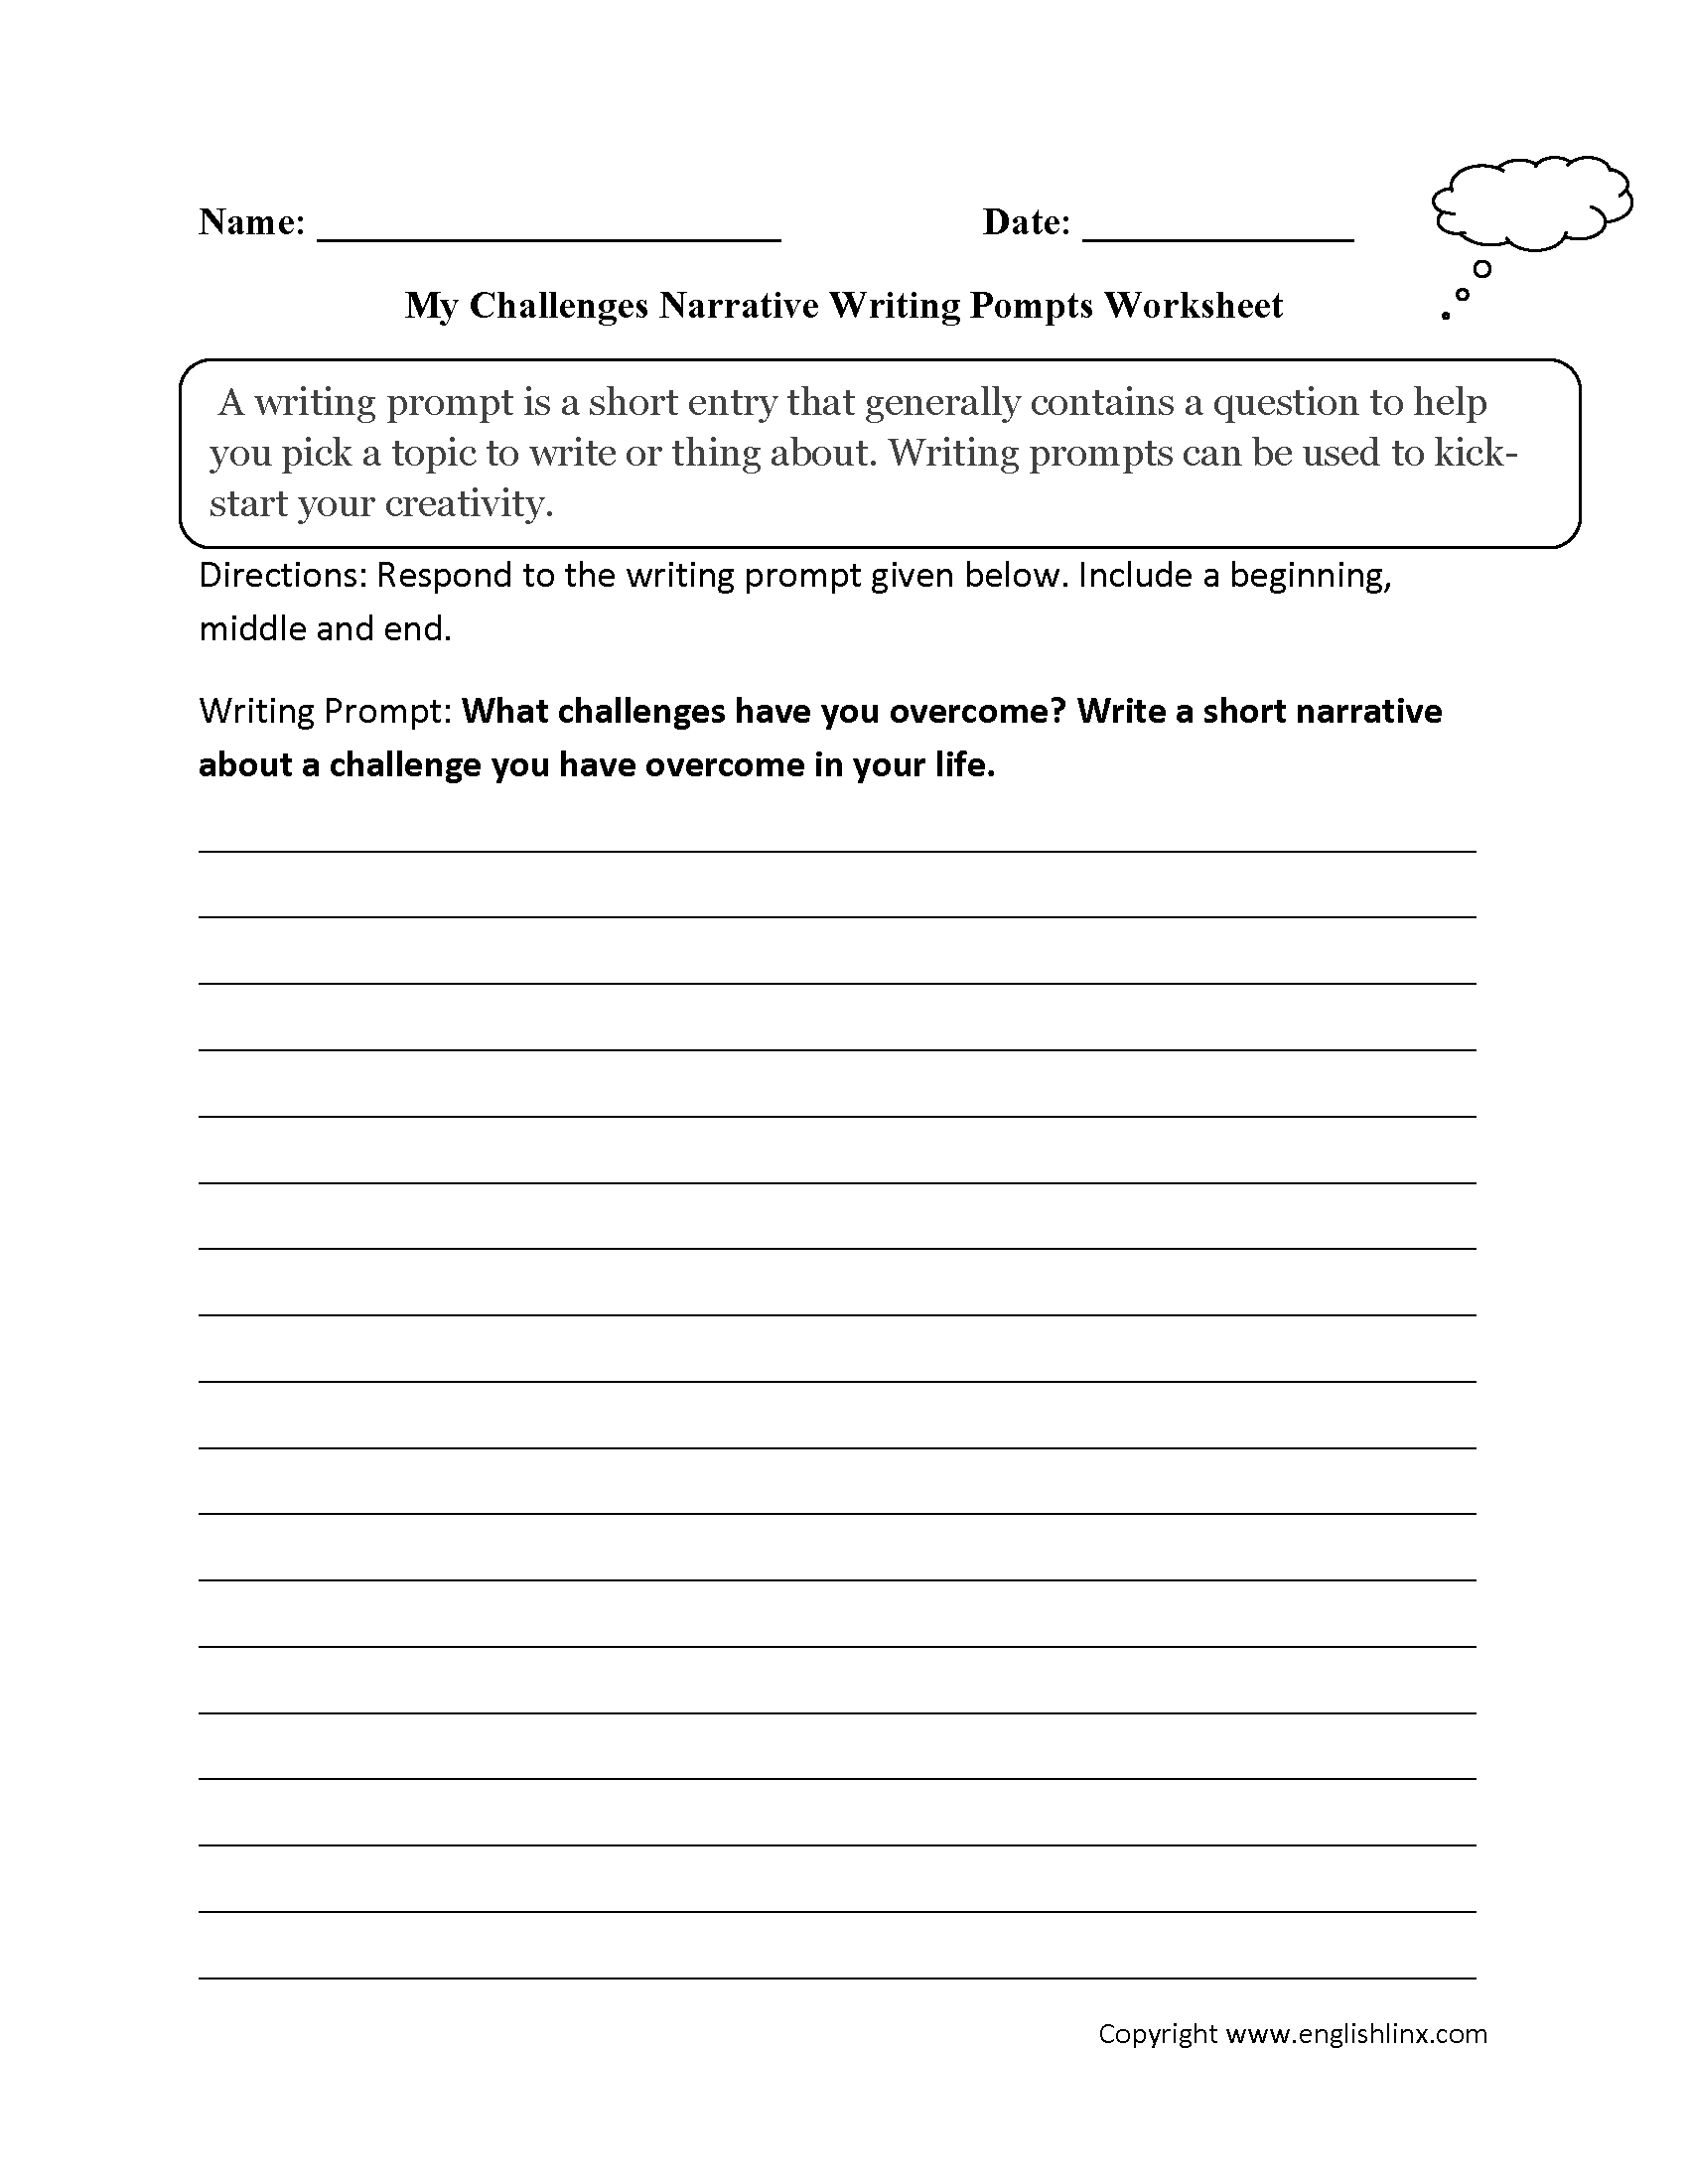 writing prompts worksheets narrative writing prompt worksheets overcoming challenges narrative writing prompt worksheet